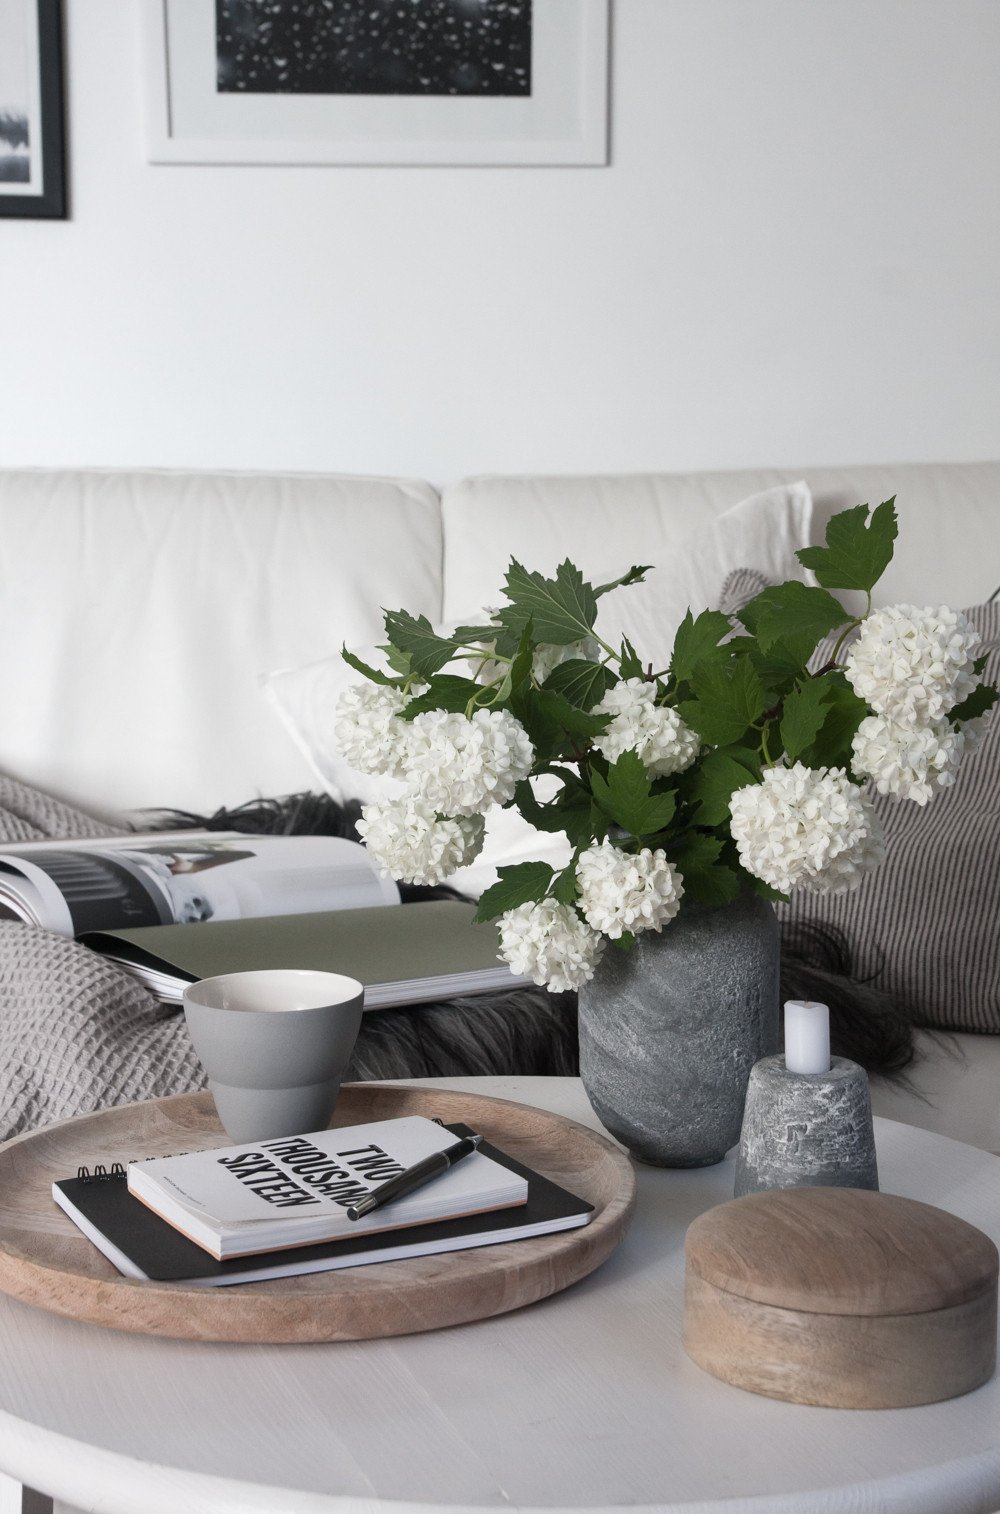 H and M Home Decor Elegant Decordots My Living Room H&m Home